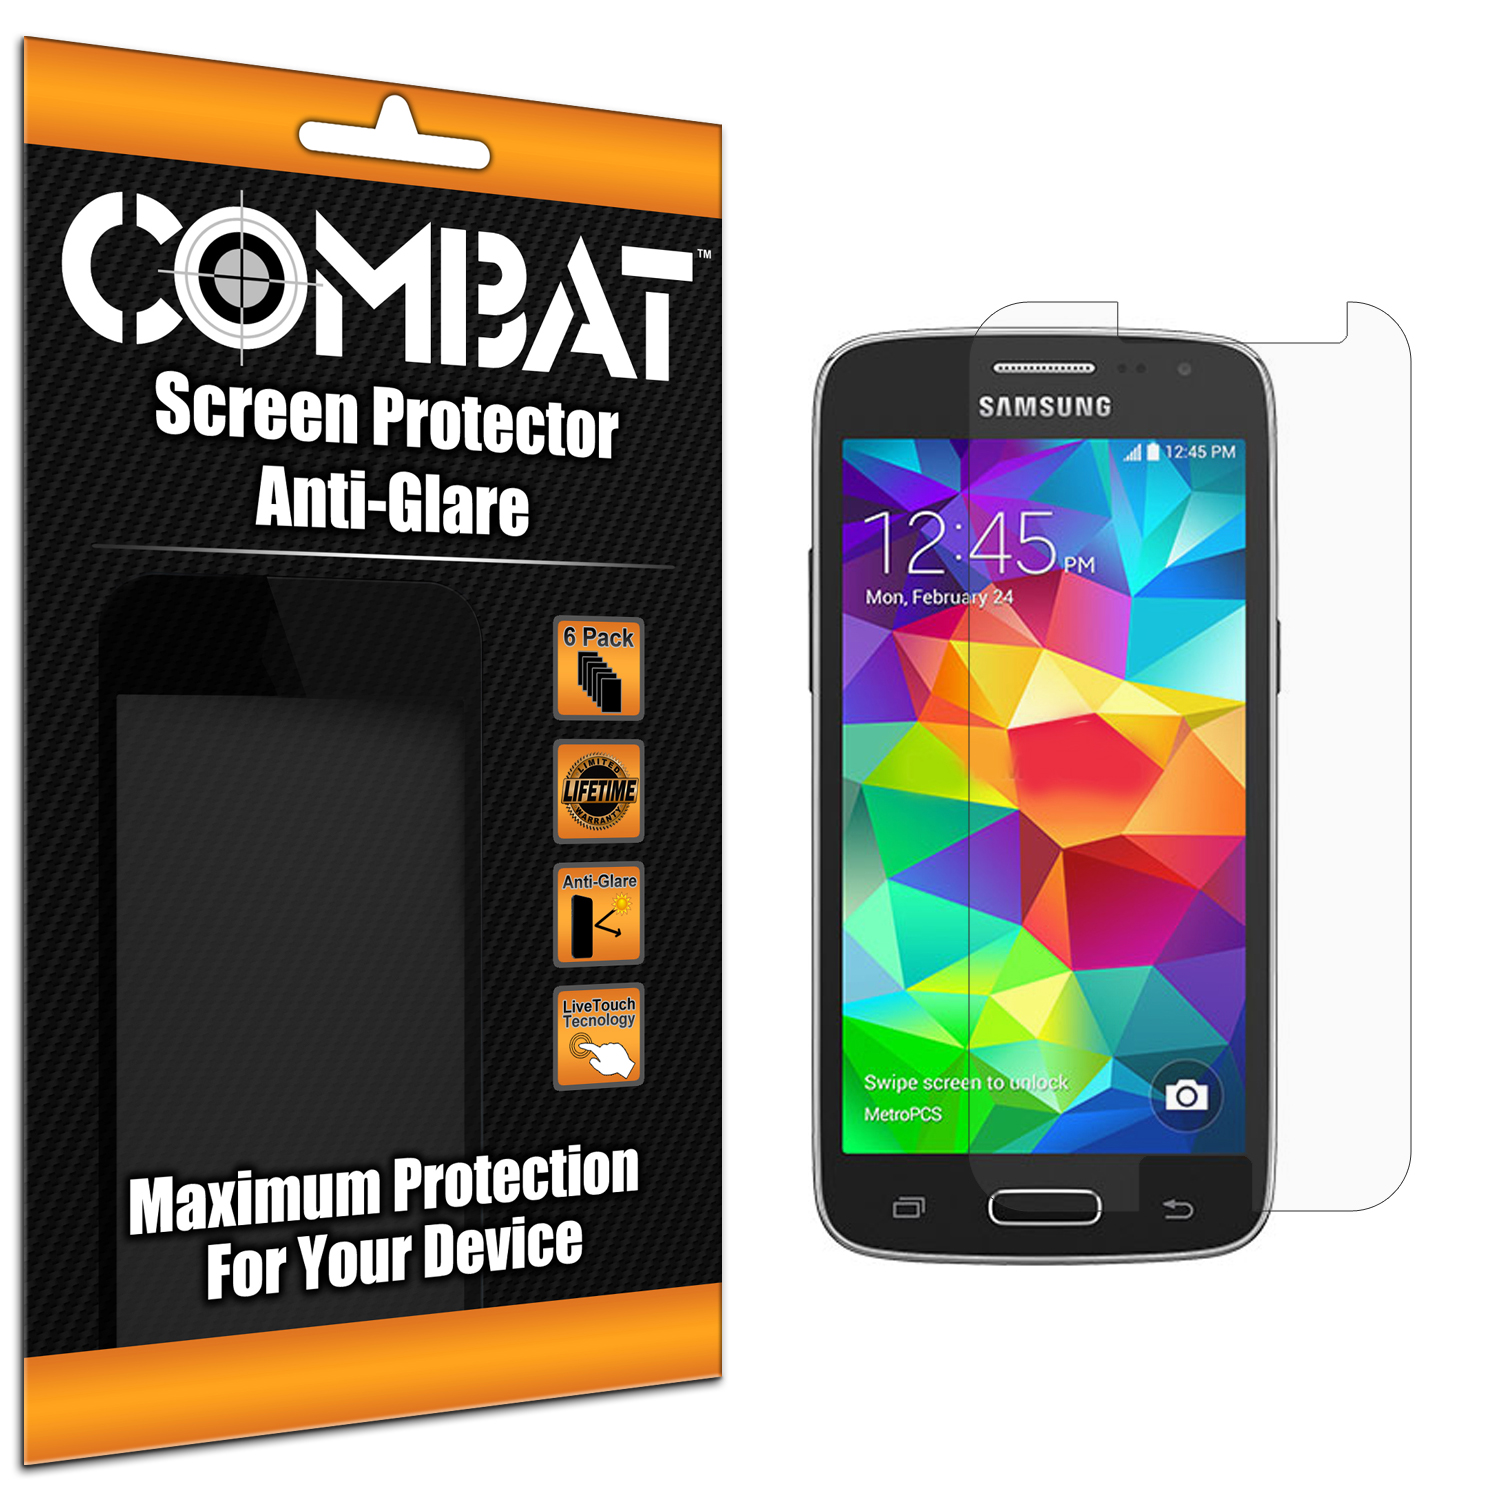 Samsung Galaxy Avant G386 Combat 6 Pack Anti-Glare Matte Screen Protector